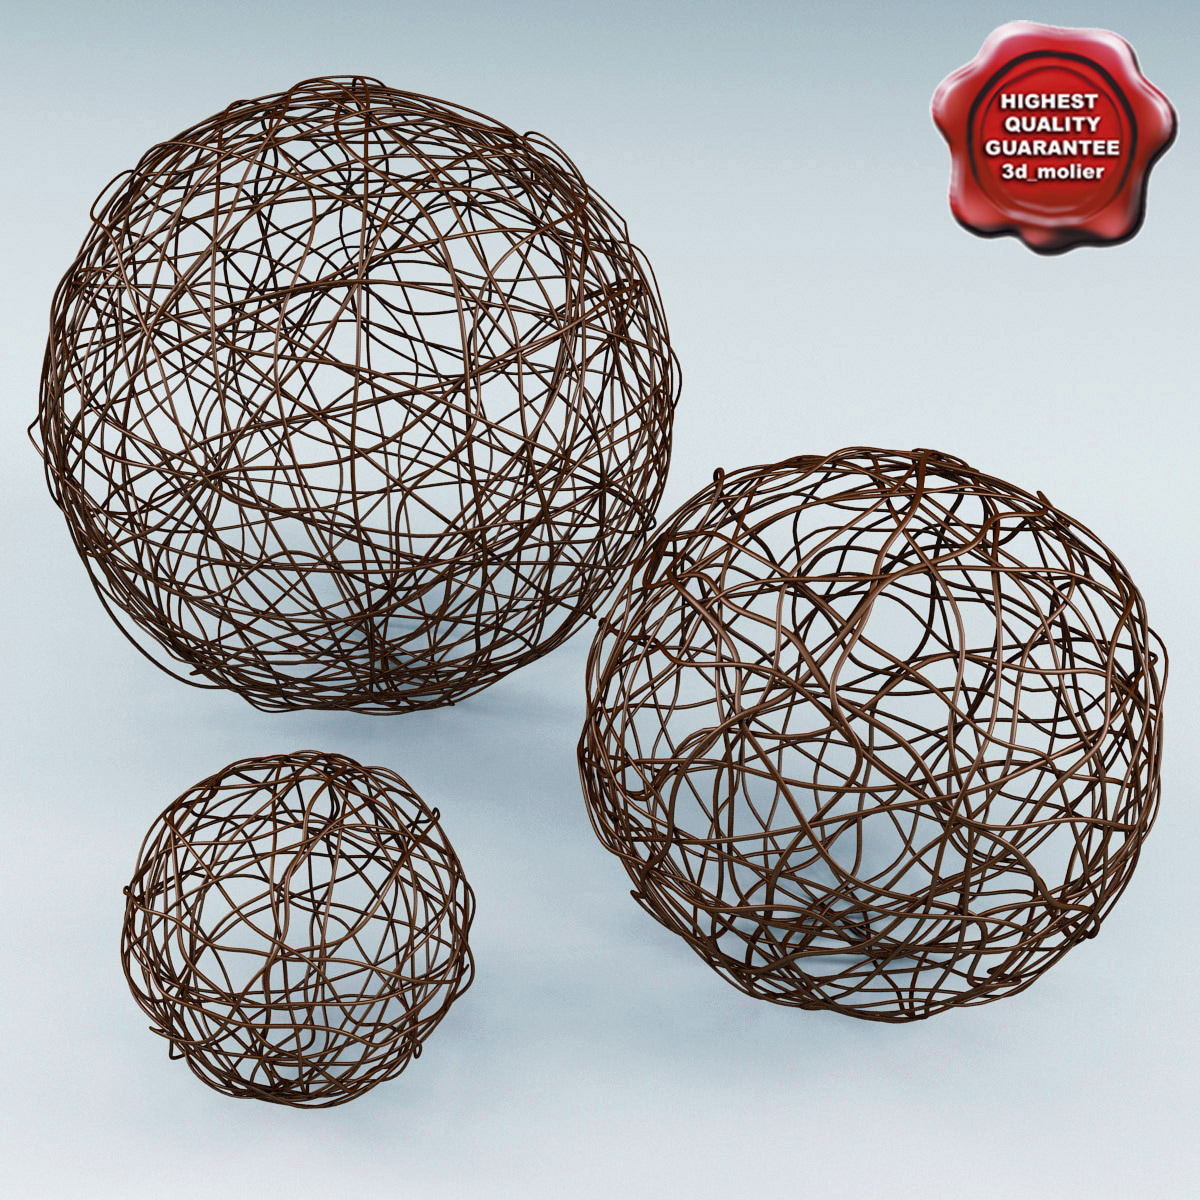 Wicker_Core_Spheres_00.jpg